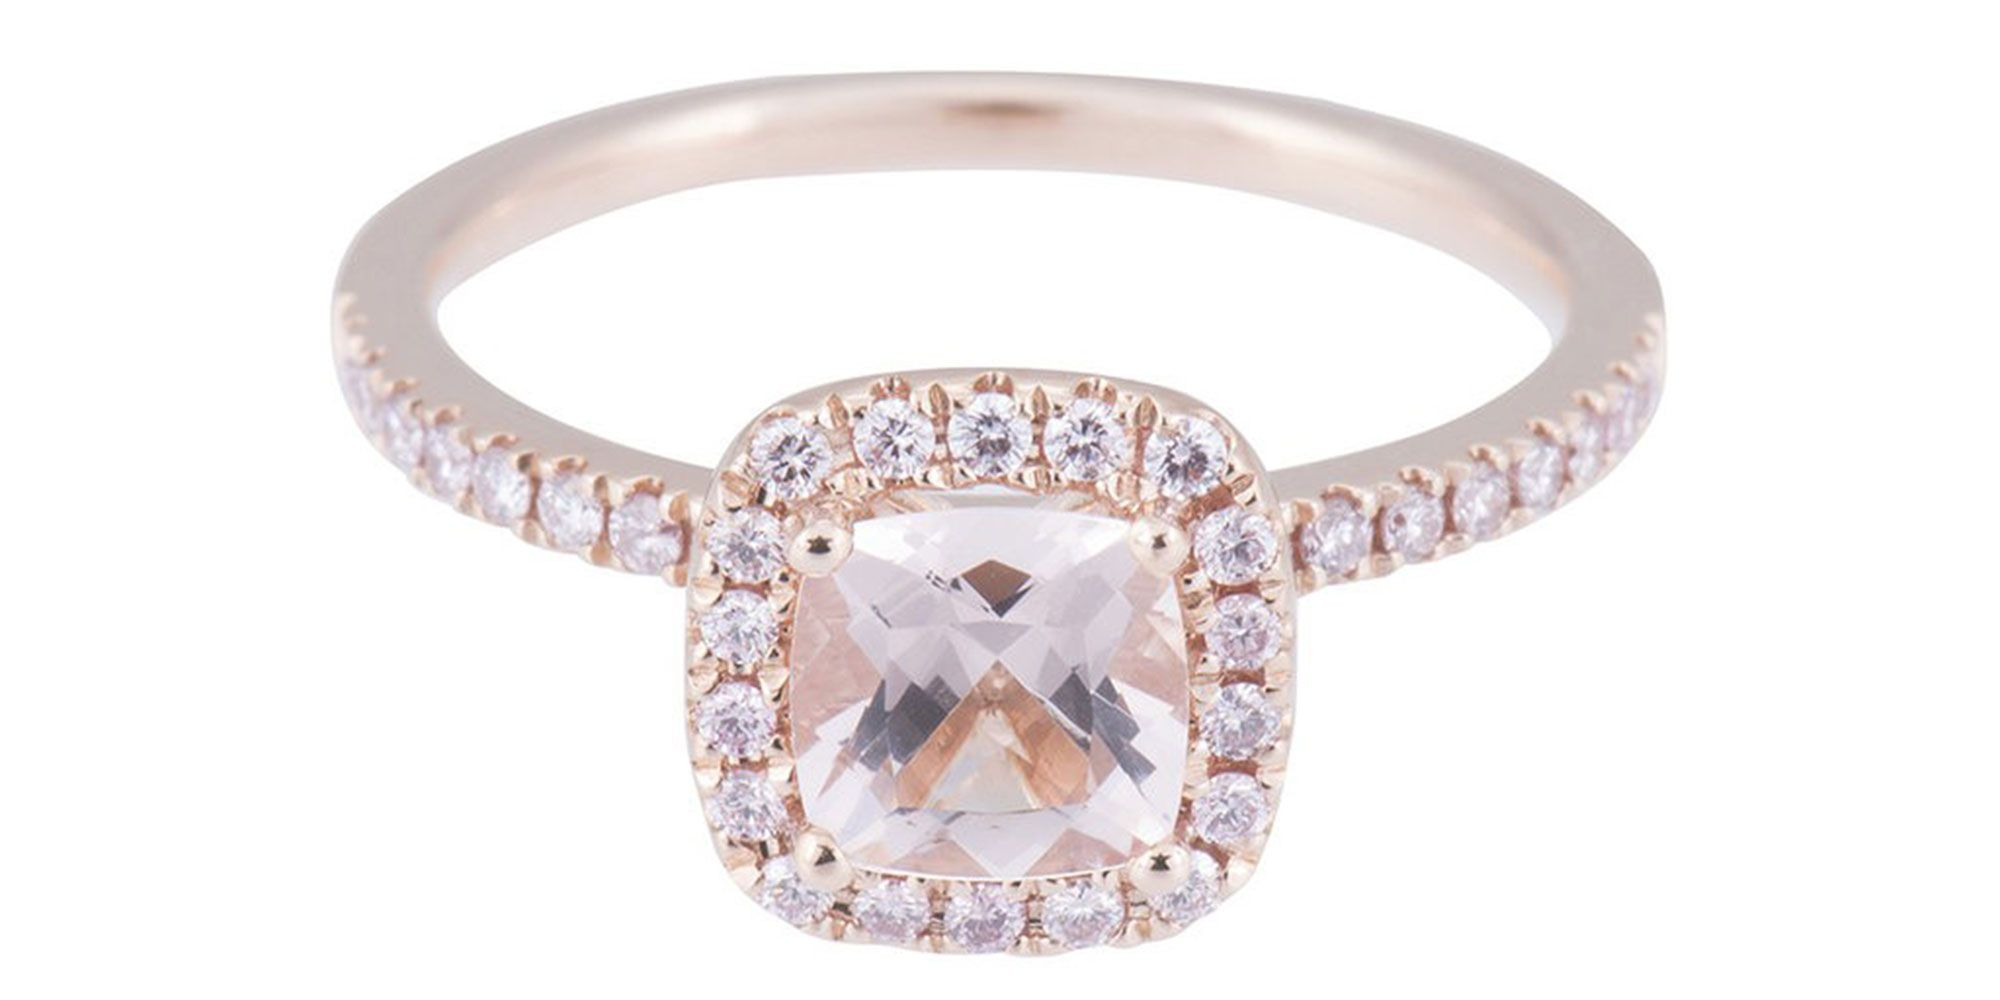 fancy shaped crop diamond subsampling upscale pink rings ring images christies false scale pear light